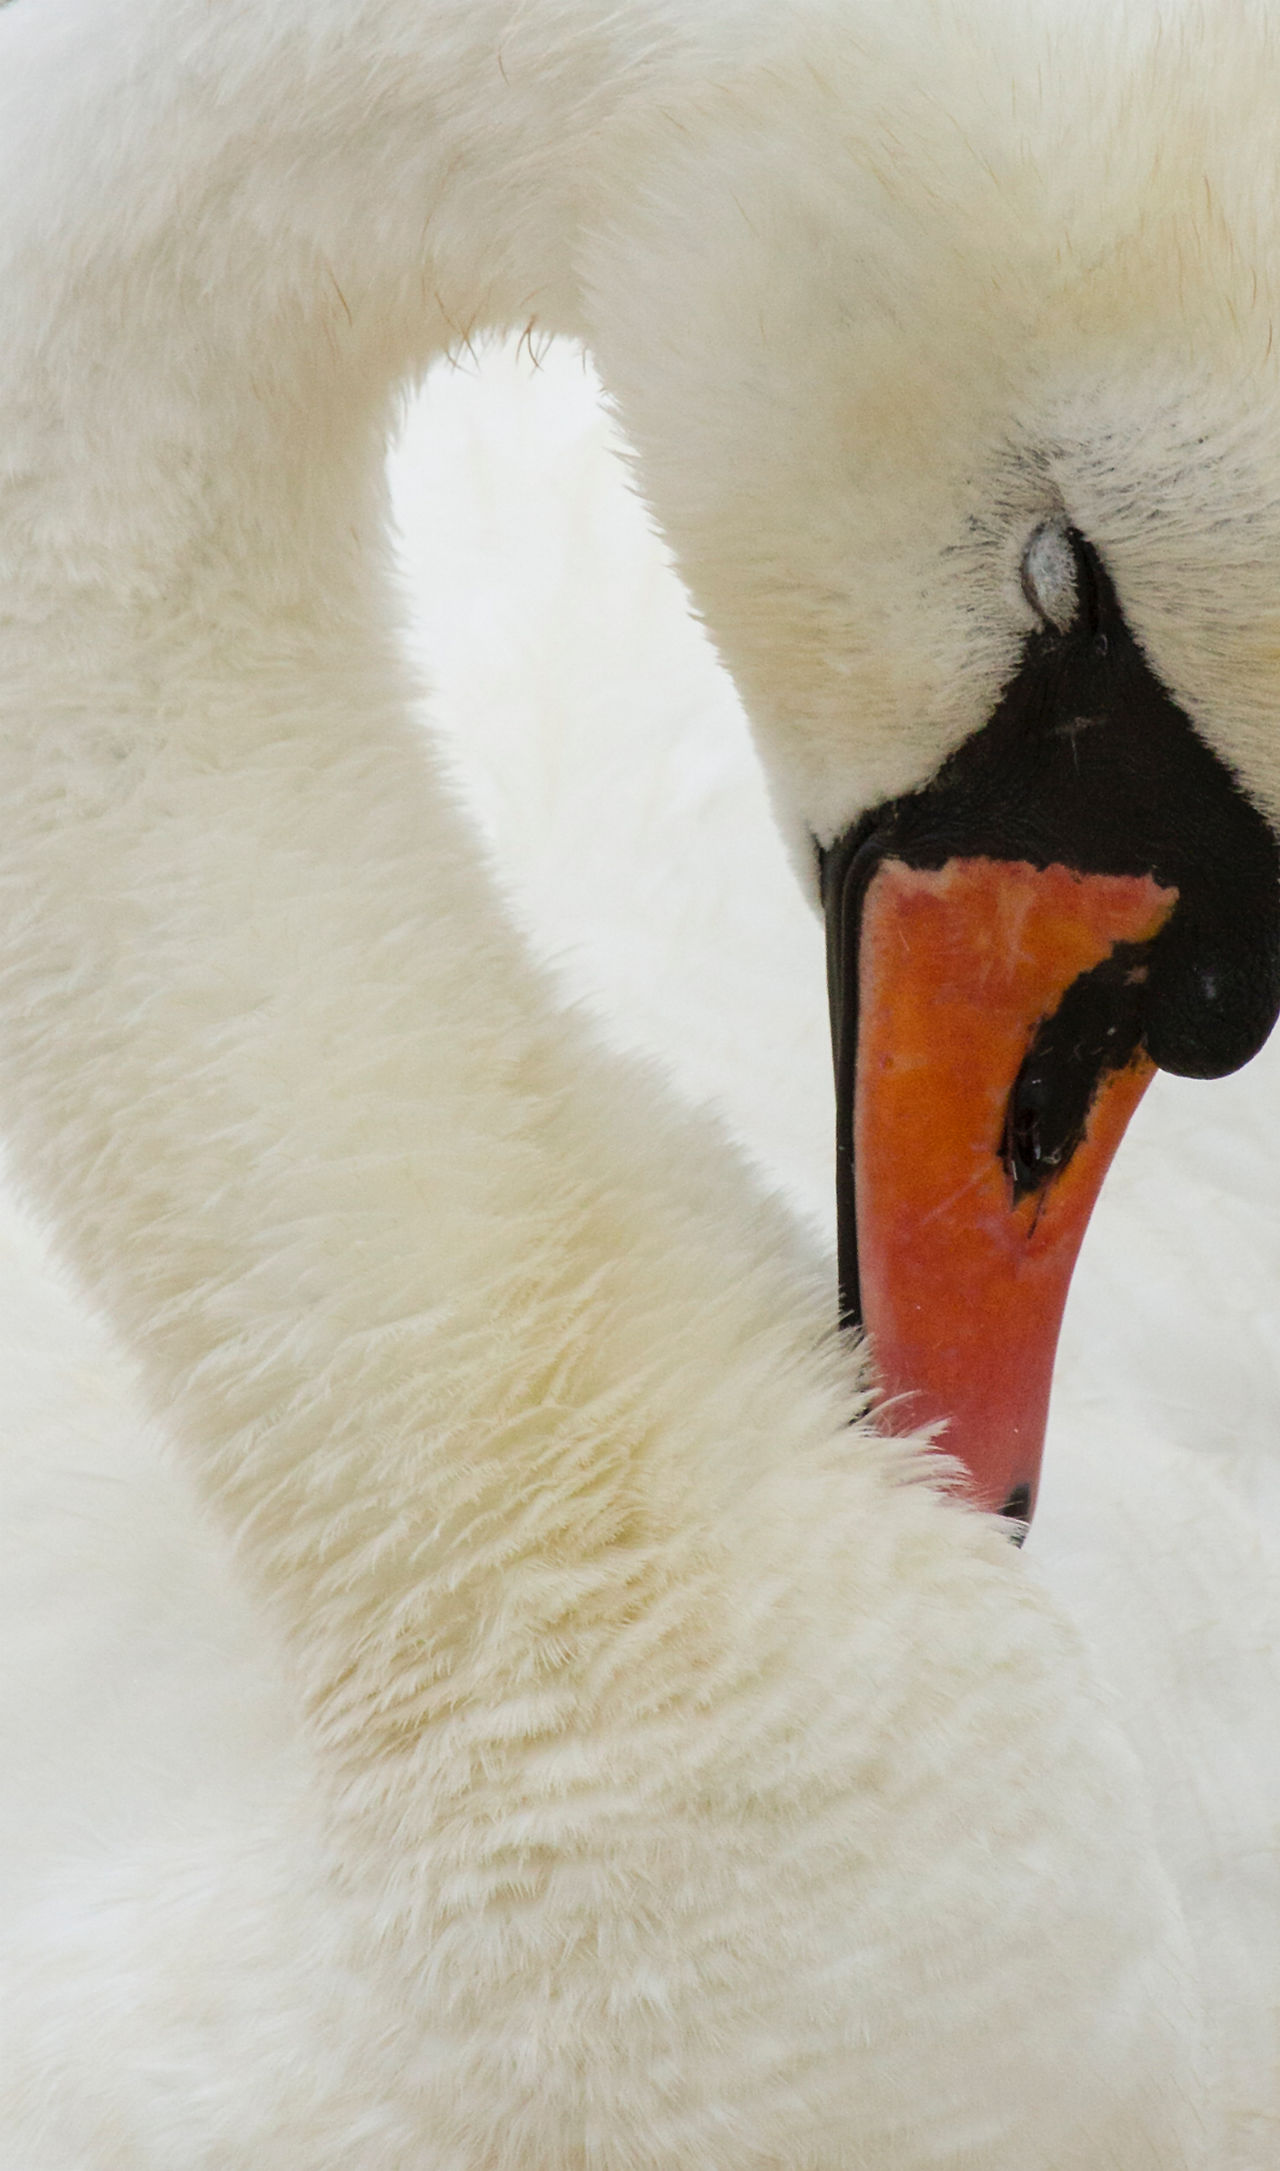 Animal Body Part Animal Head  Animal Themes Bird Close-up Day Nature No People One Animal Orange Color Outdoors Part Of Sleeping Swan,  White White Color Wildlife Zoology